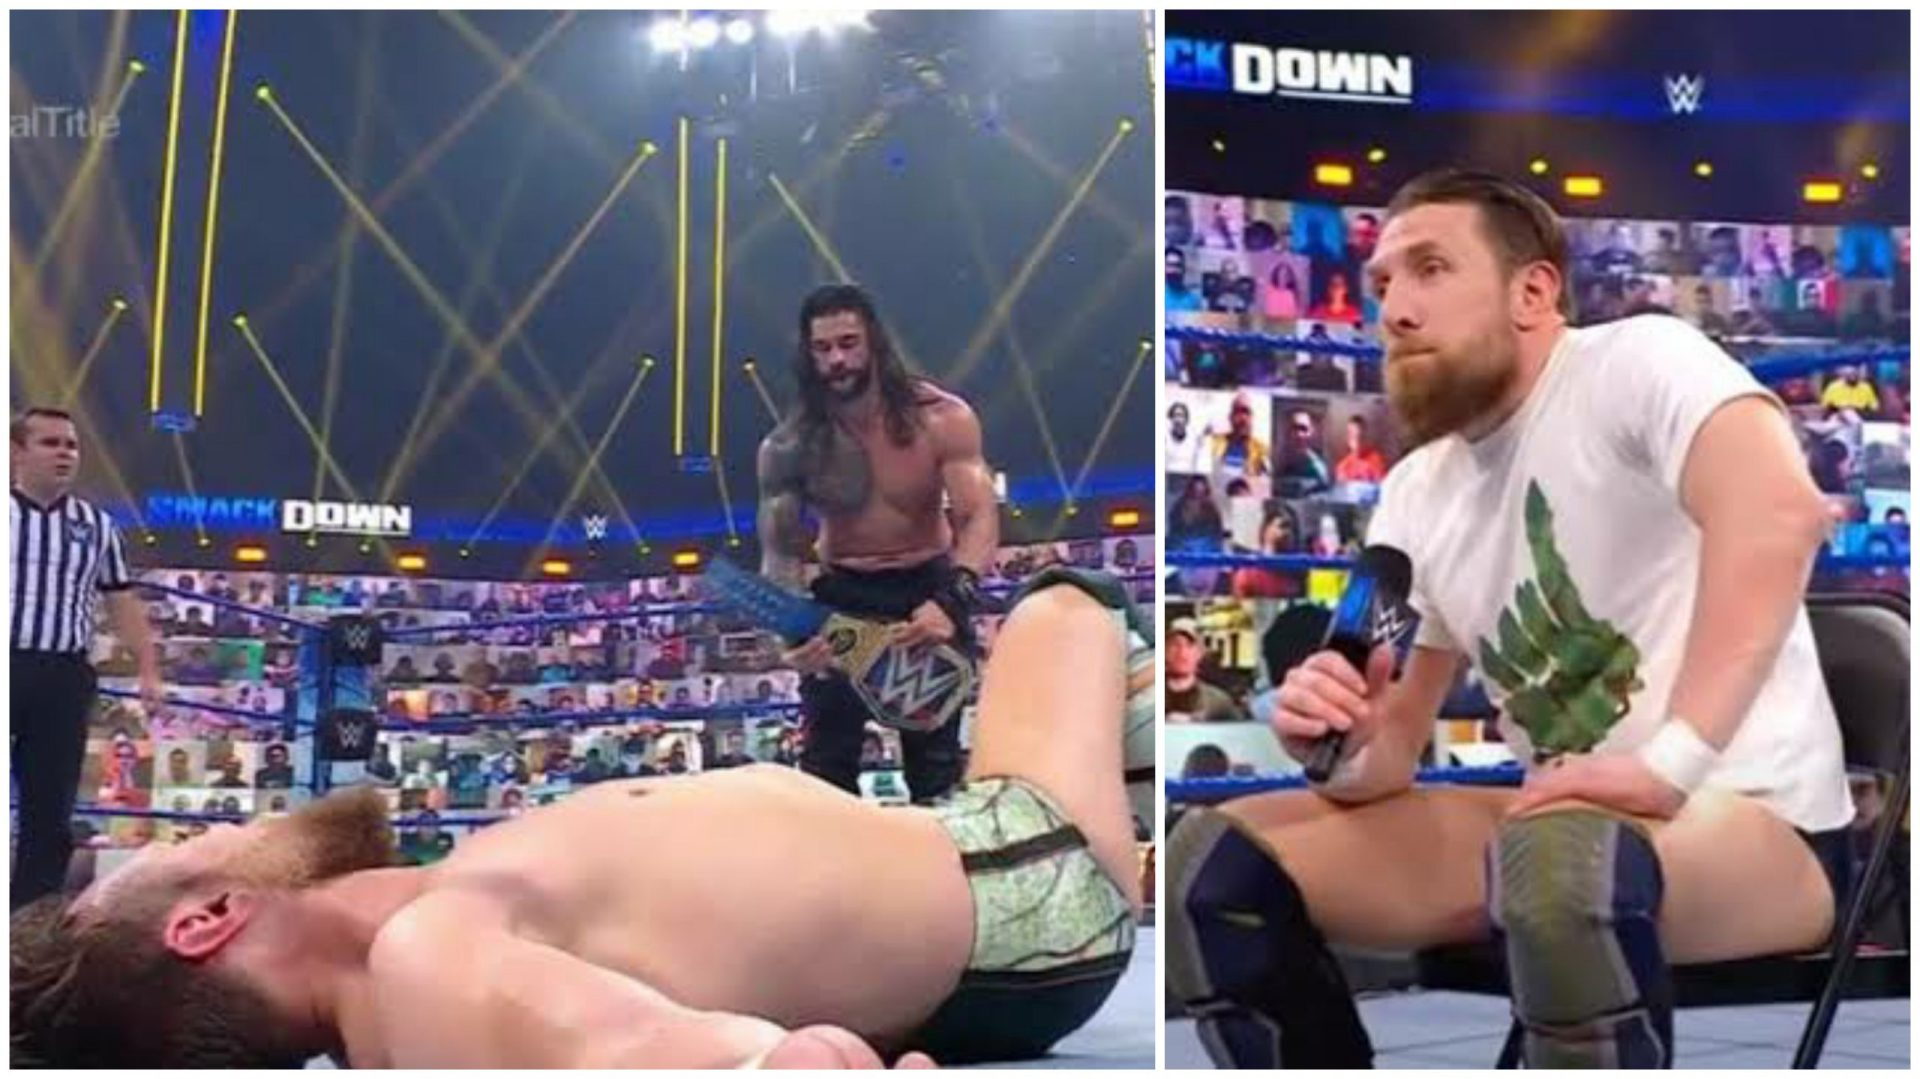 Daniel Bryan loses to Reigns, banished from Smackdown - THE SPORTS ROOM